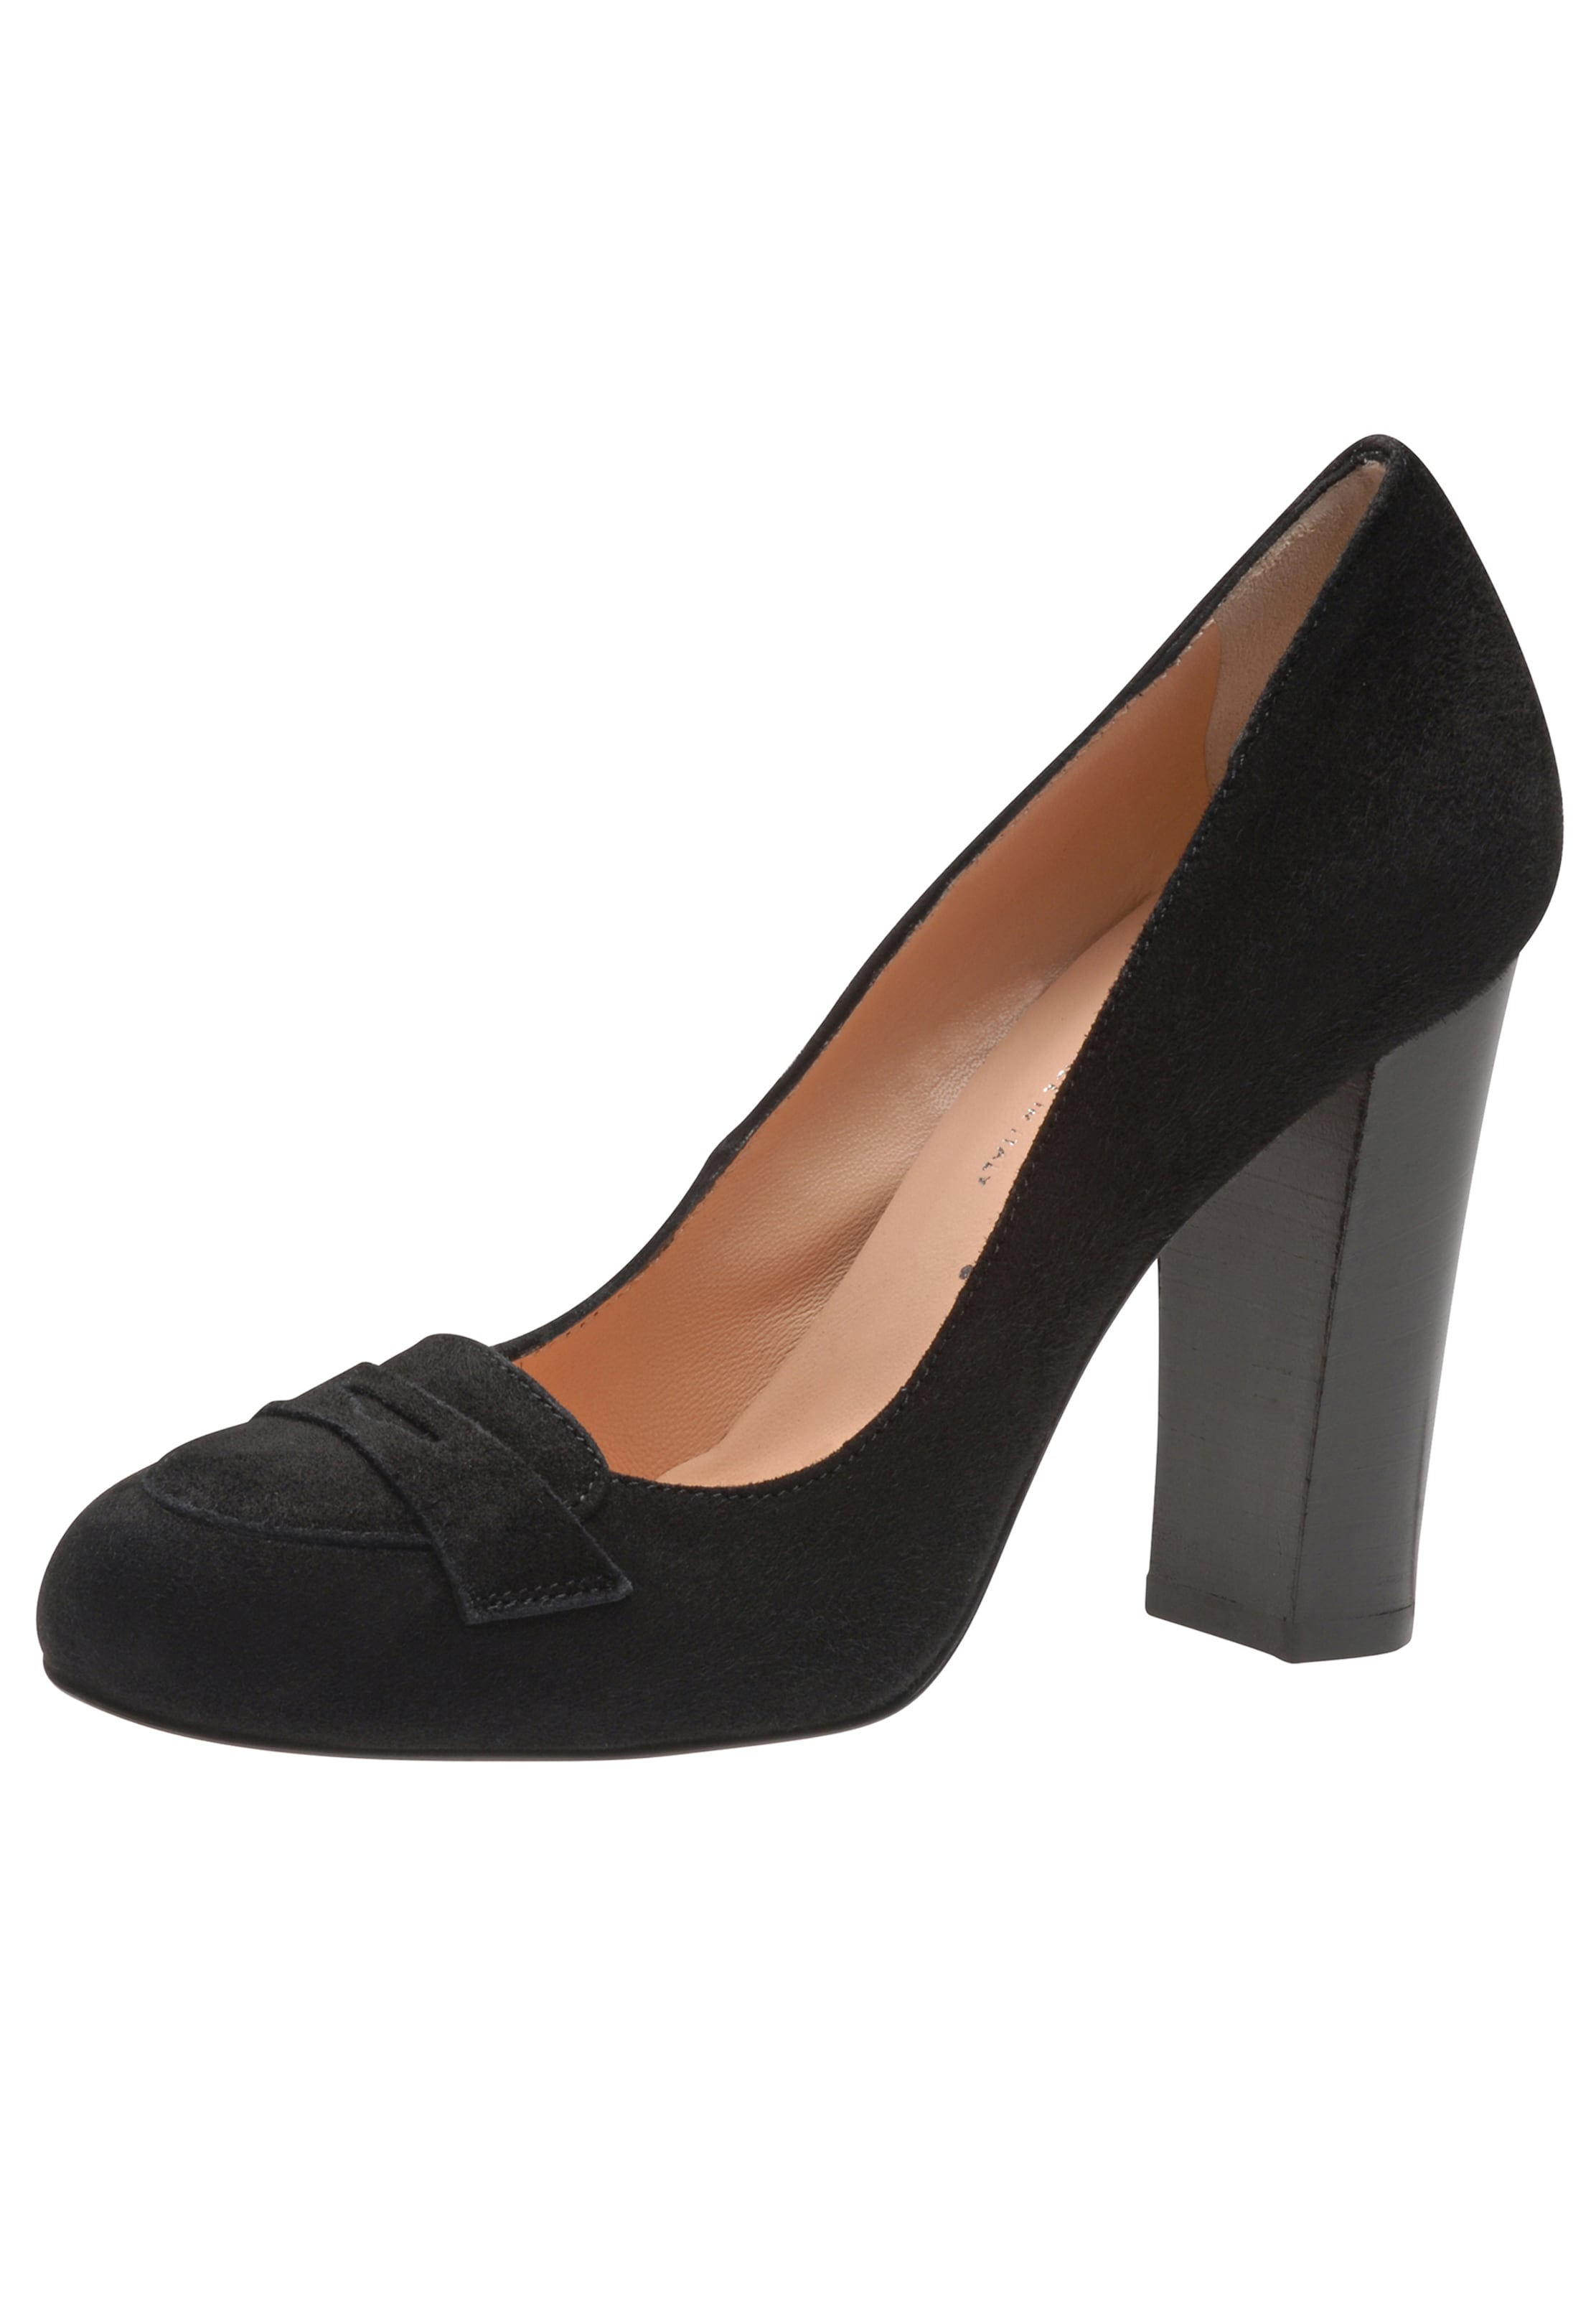 EVITA Damen Pumps in schwarz